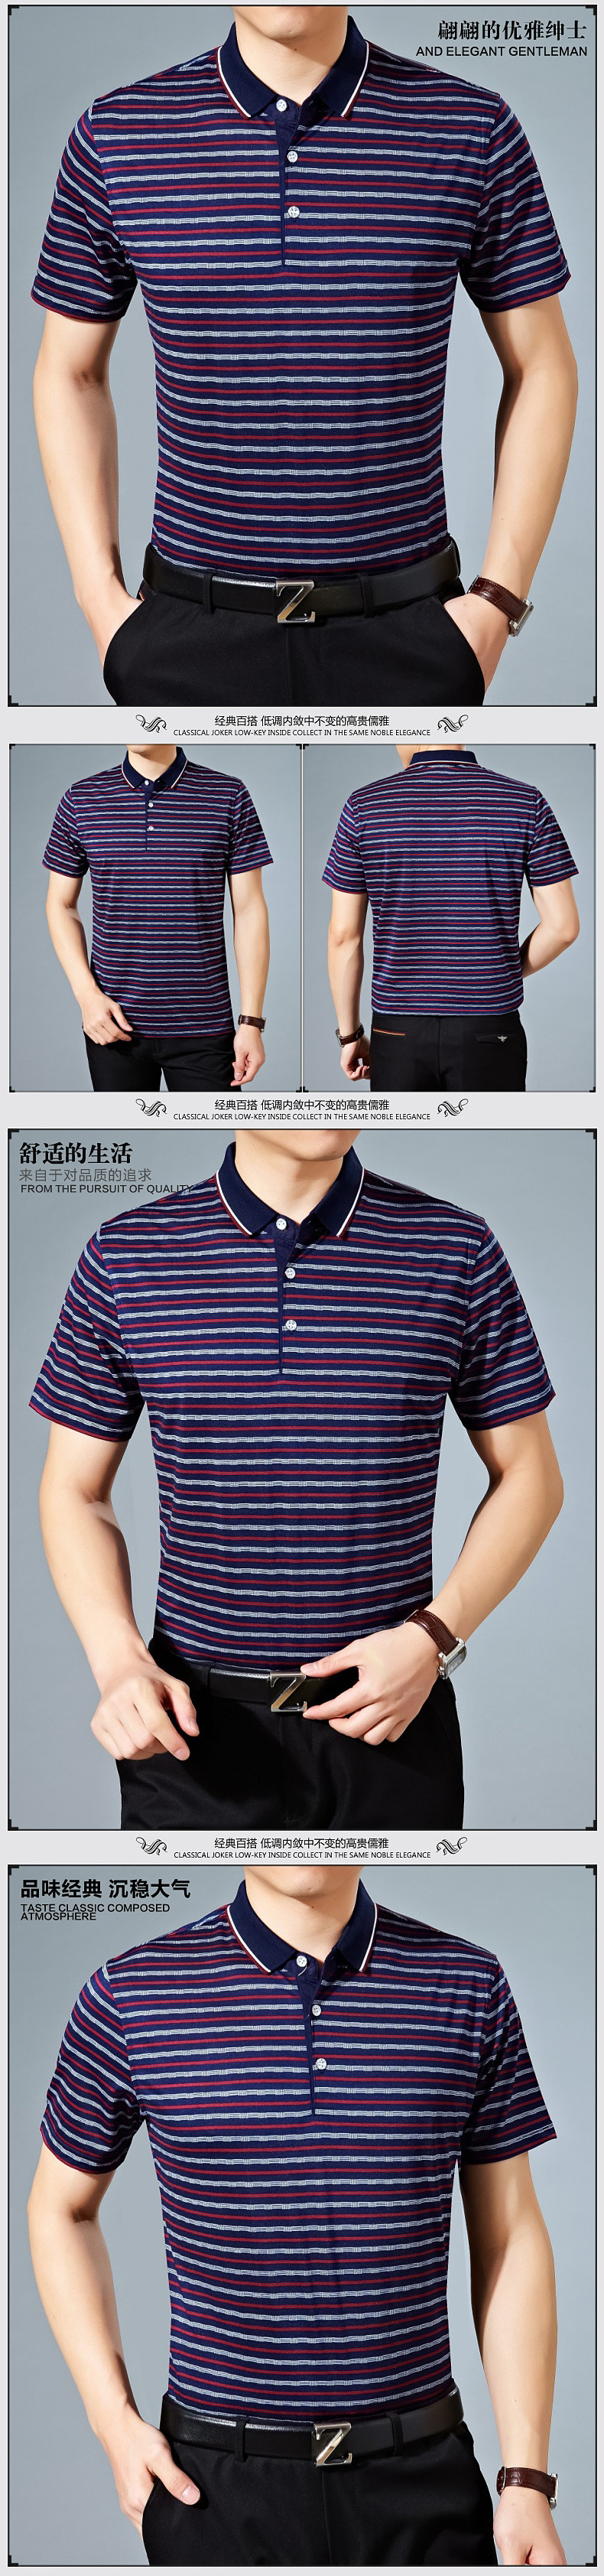 Aliexpress.com  Buy 2017 Summer Style Polo Shirt Brand Mens Classisc Cotton Polos Breathable Fitness Top Shirts Casual Poloshirt from Reliable Polo suppliers on Mystery Costumes(1)